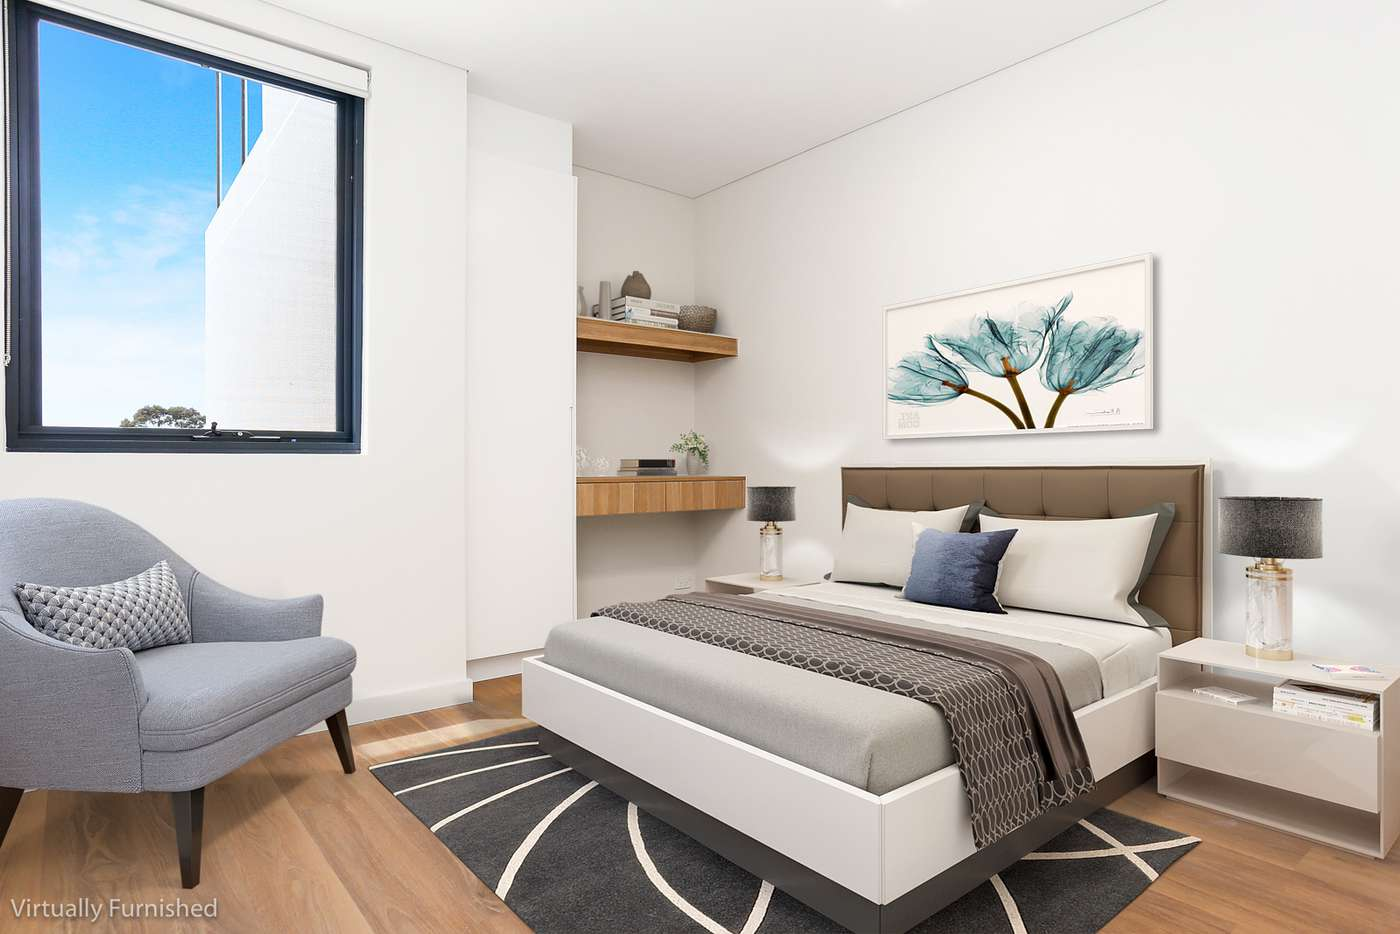 Sixth view of Homely apartment listing, 603/2 Murrell Street, Ashfield NSW 2131